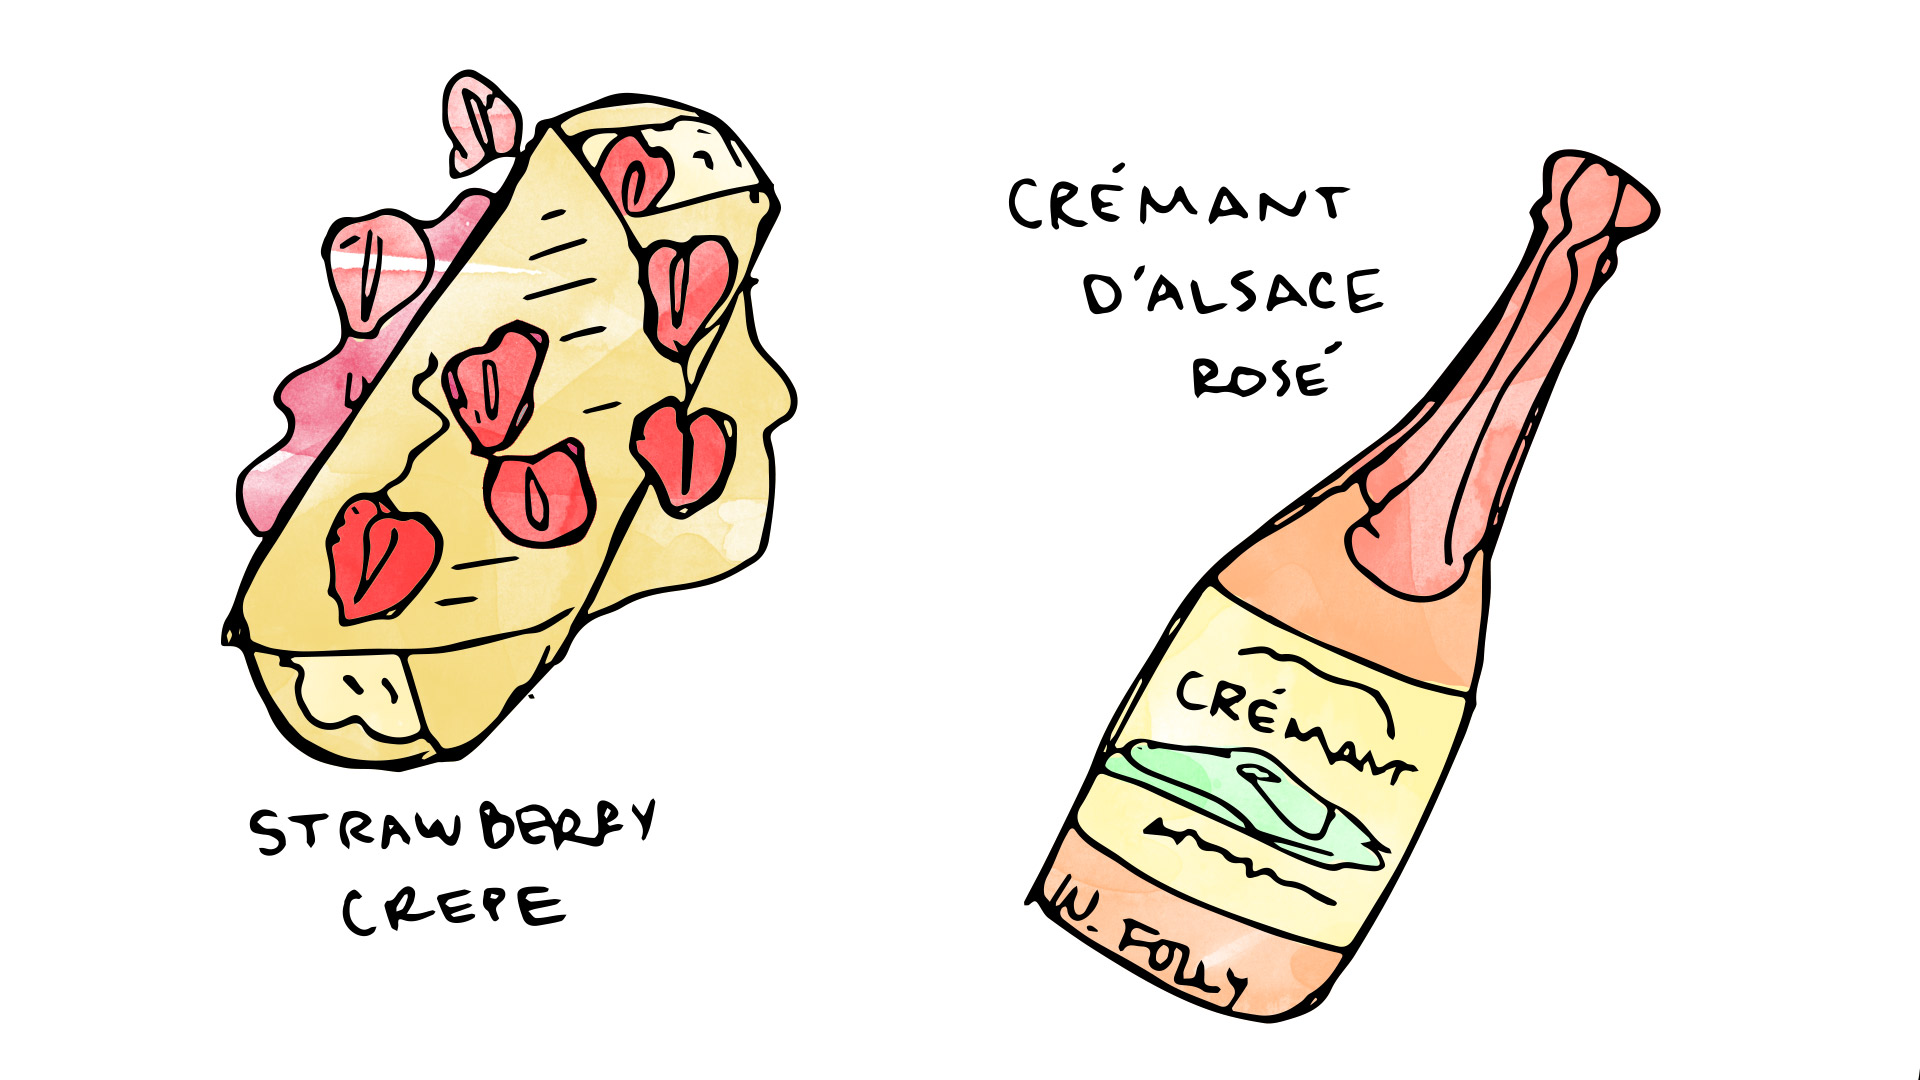 Strawberry and ricotta crepe wine pairing with cremant d alsace rose illustration by Wine Folly